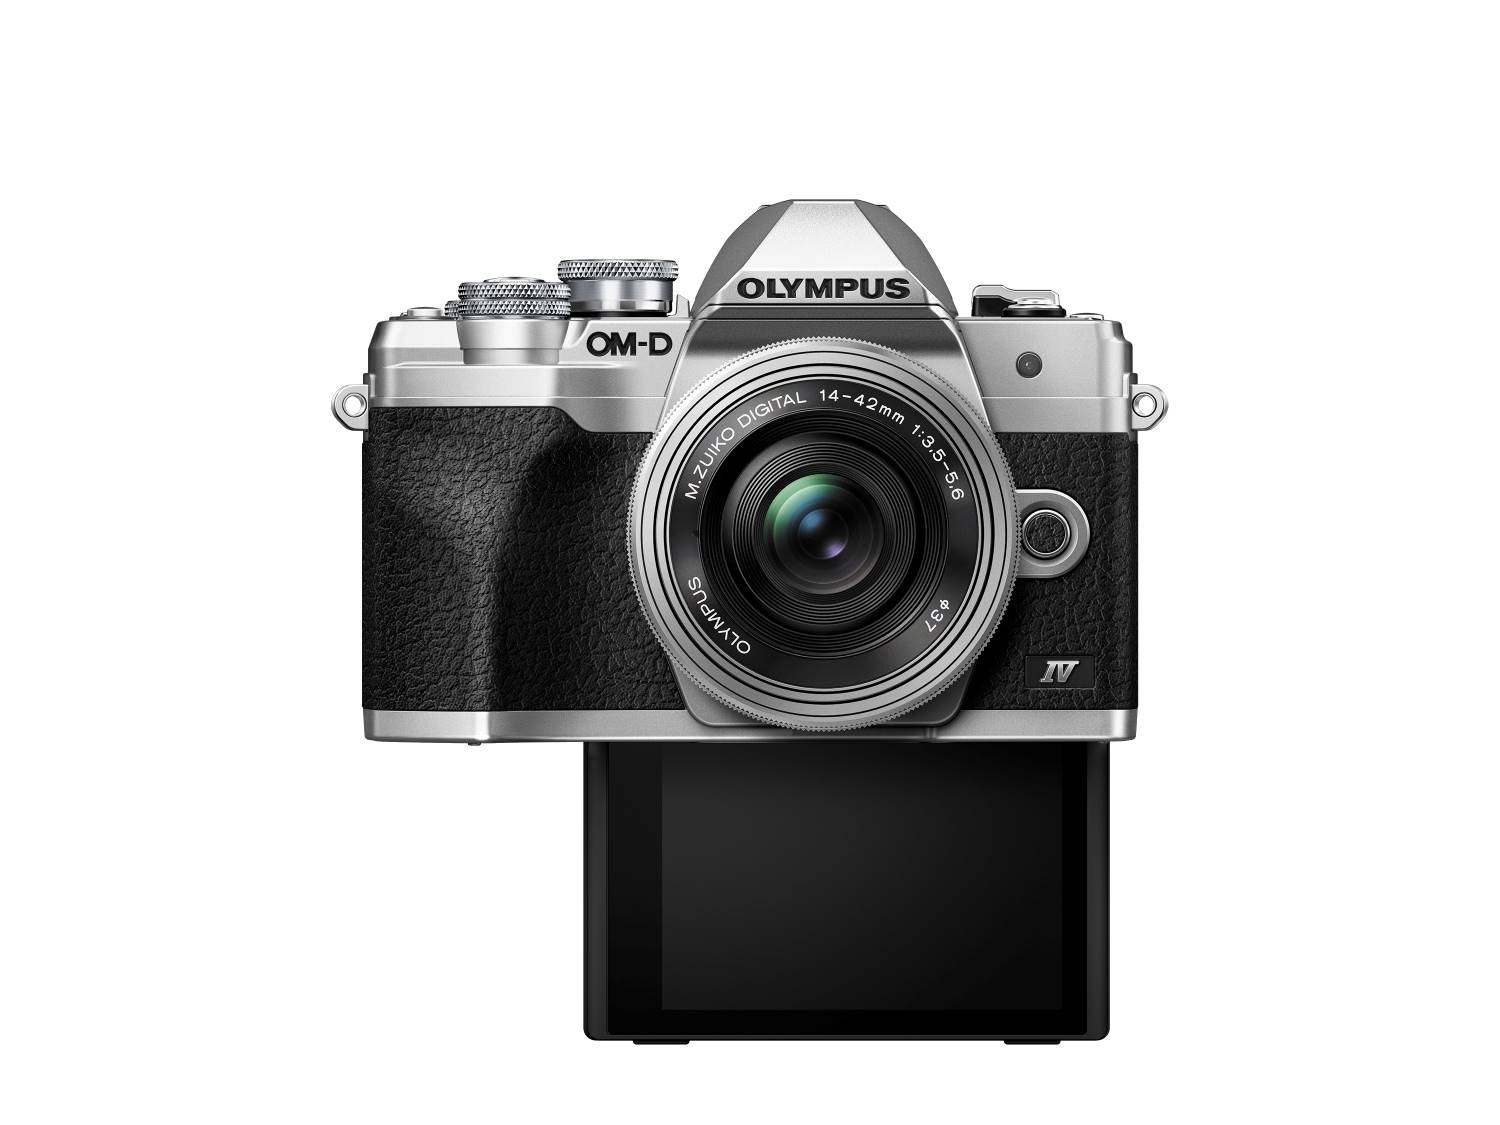 https://i0.wp.com/digital-photography-school.com/wp-content/uploads/2020/08/Olympus-OMD-EM10-Mark-IV-announcement-2.jpg?ssl=1